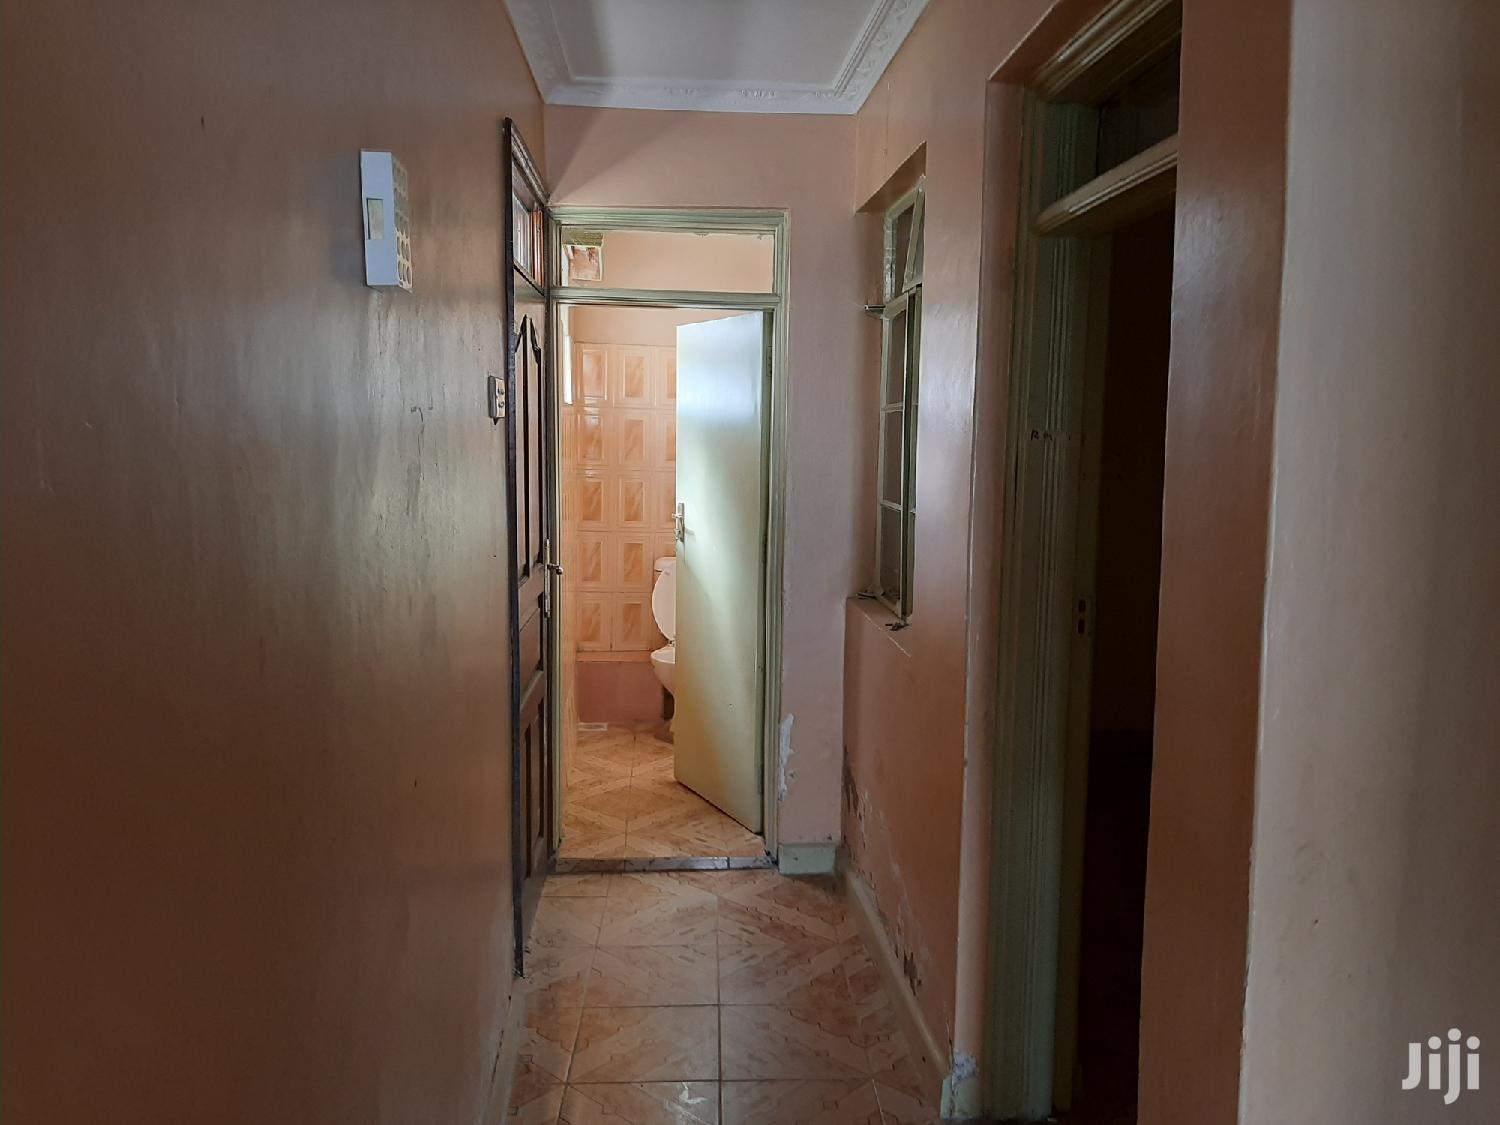 South C 4 Bedroom Mansion for Rental | Houses & Apartments For Rent for sale in South C, Nairobi, Kenya